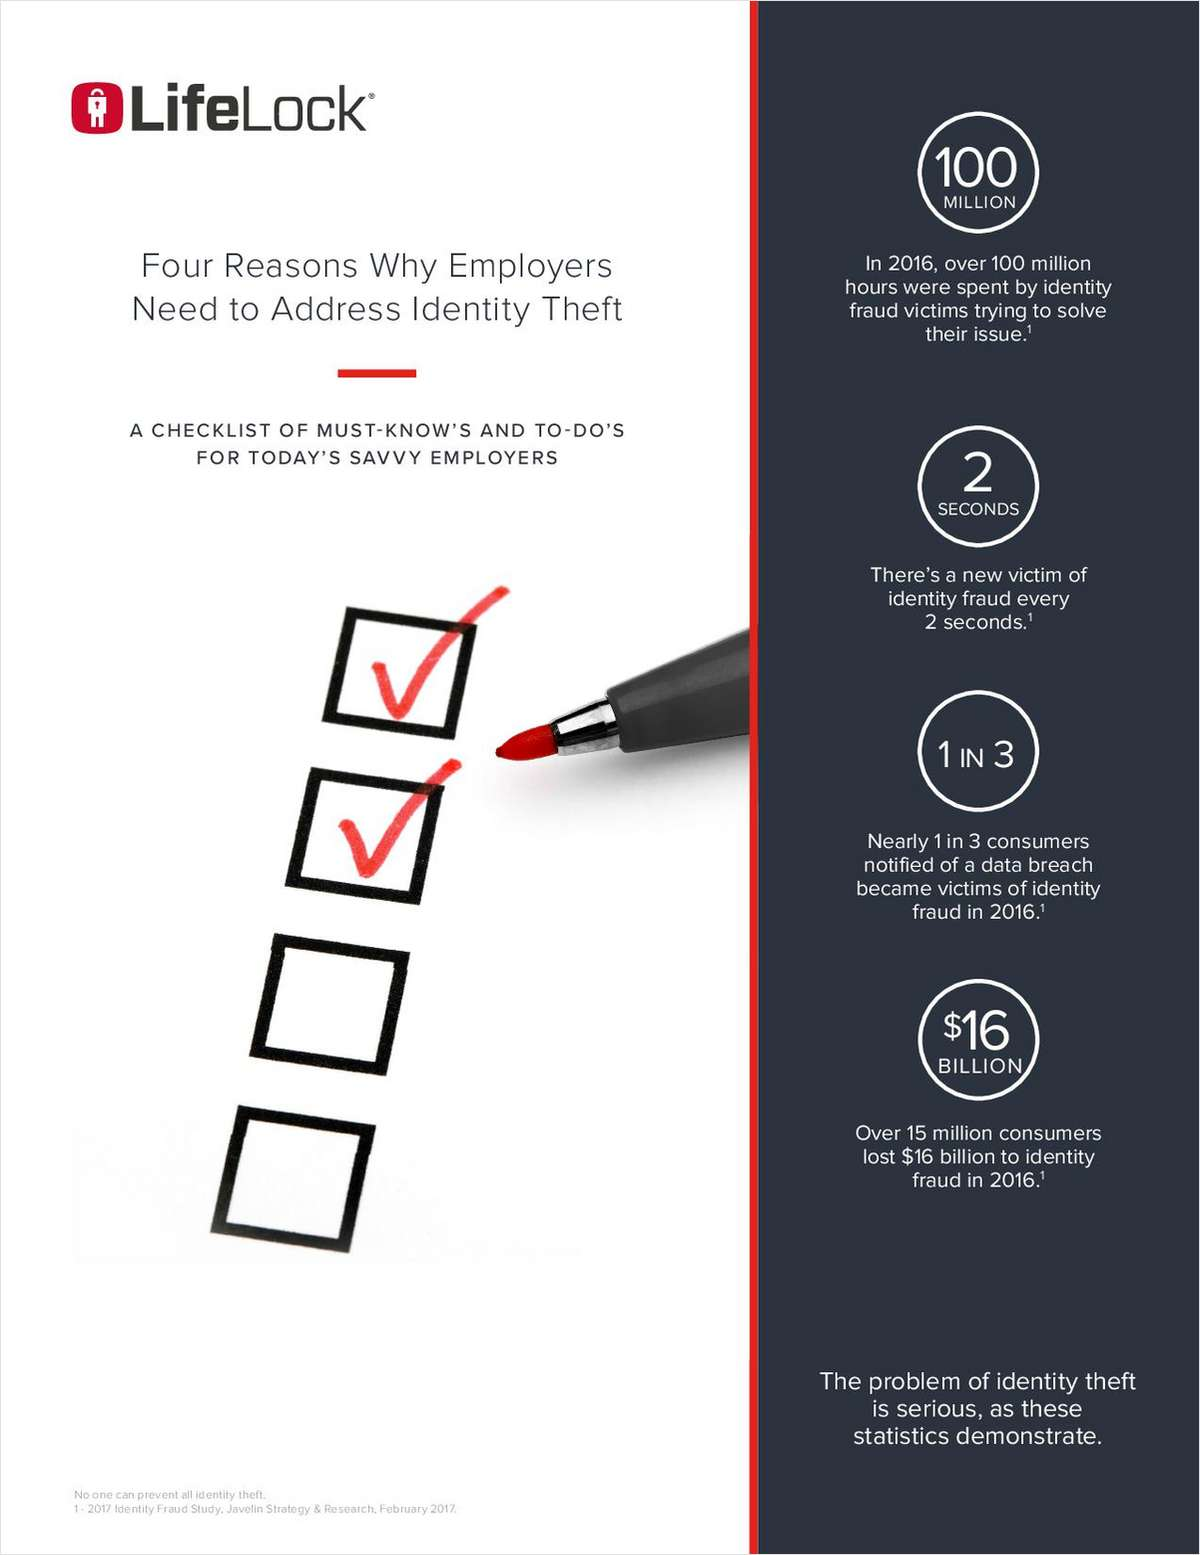 Four Reasons Why Employers Need to Address Identity Theft